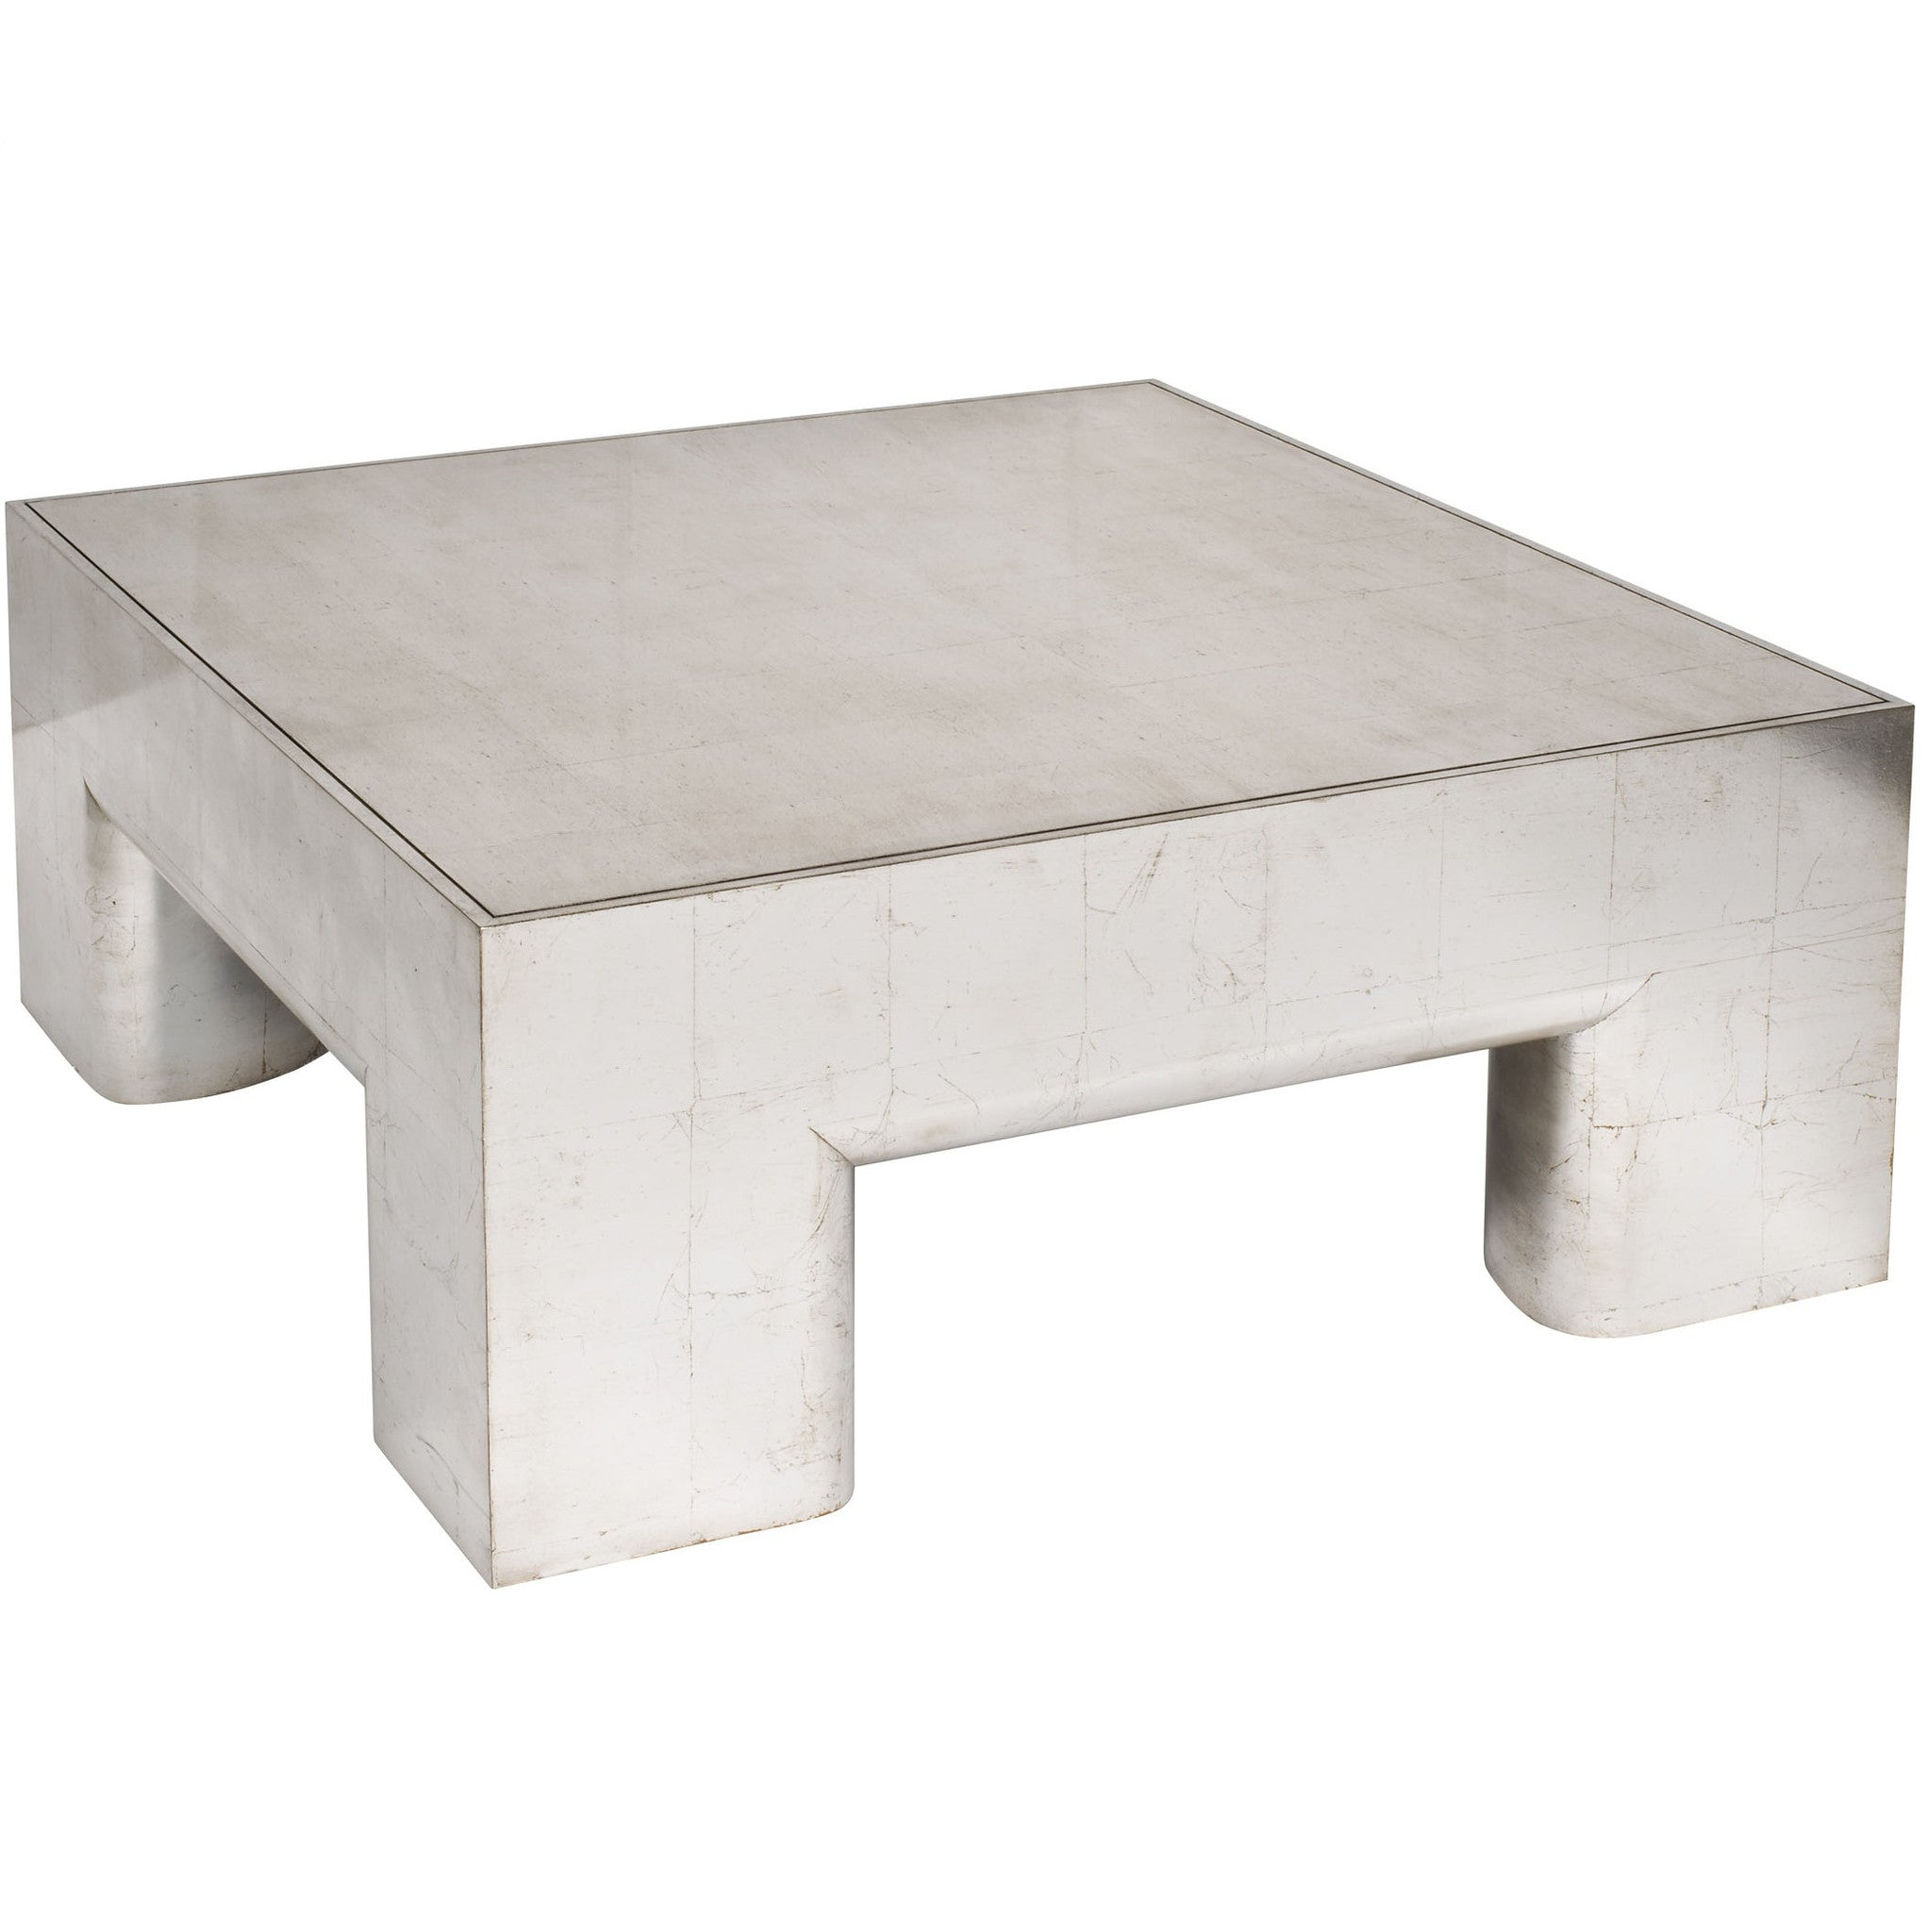 Contemporary Parsons Square Coffee Table – Villa Decor Design & Style